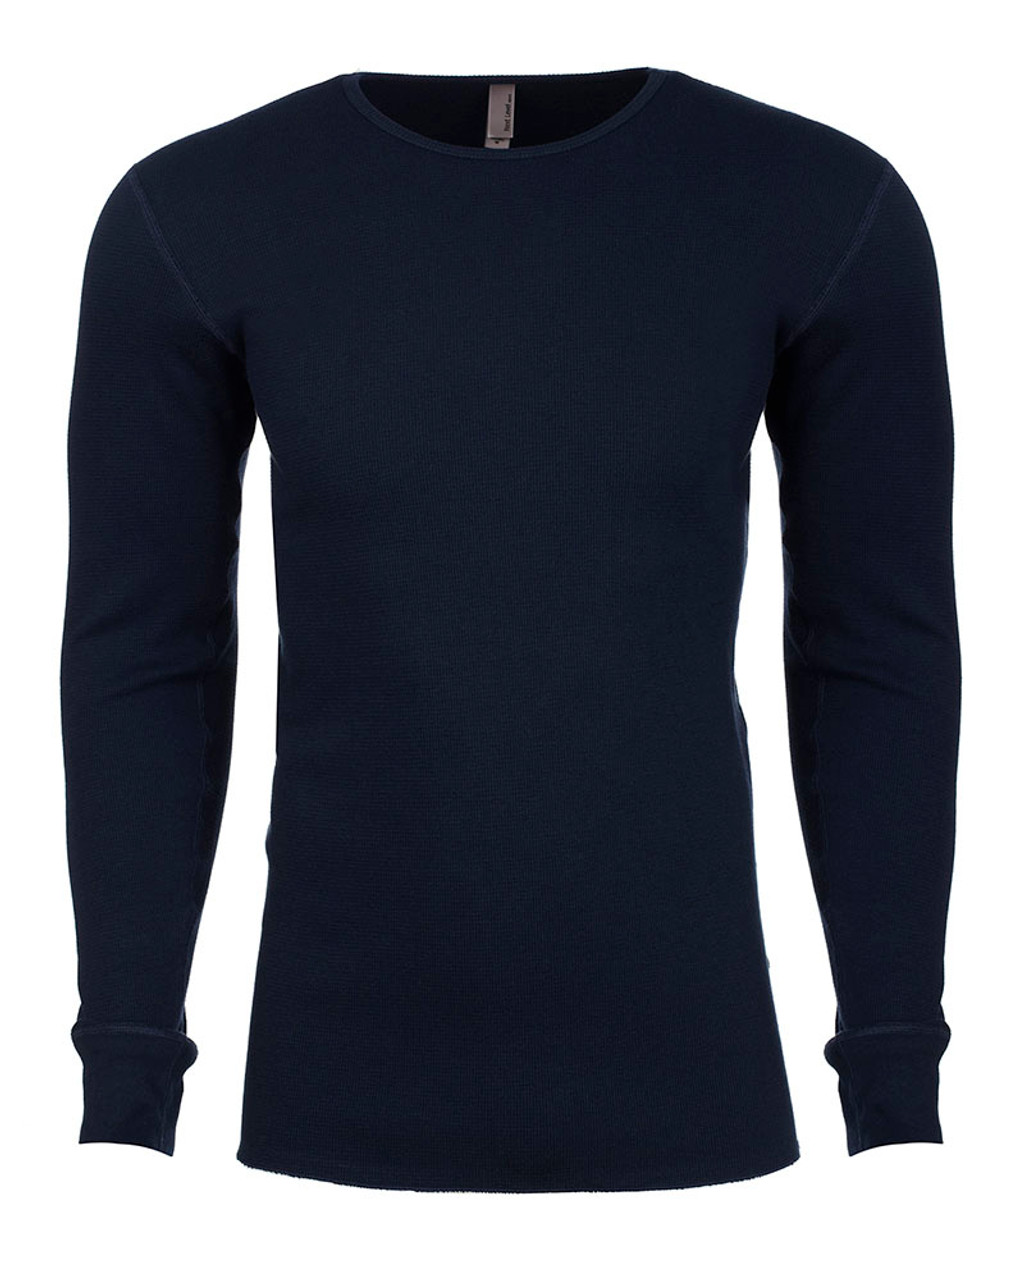 Midnight Navy - N8201 Next Level Adult Long-Sleeve Thermal | BlankClothing.ca